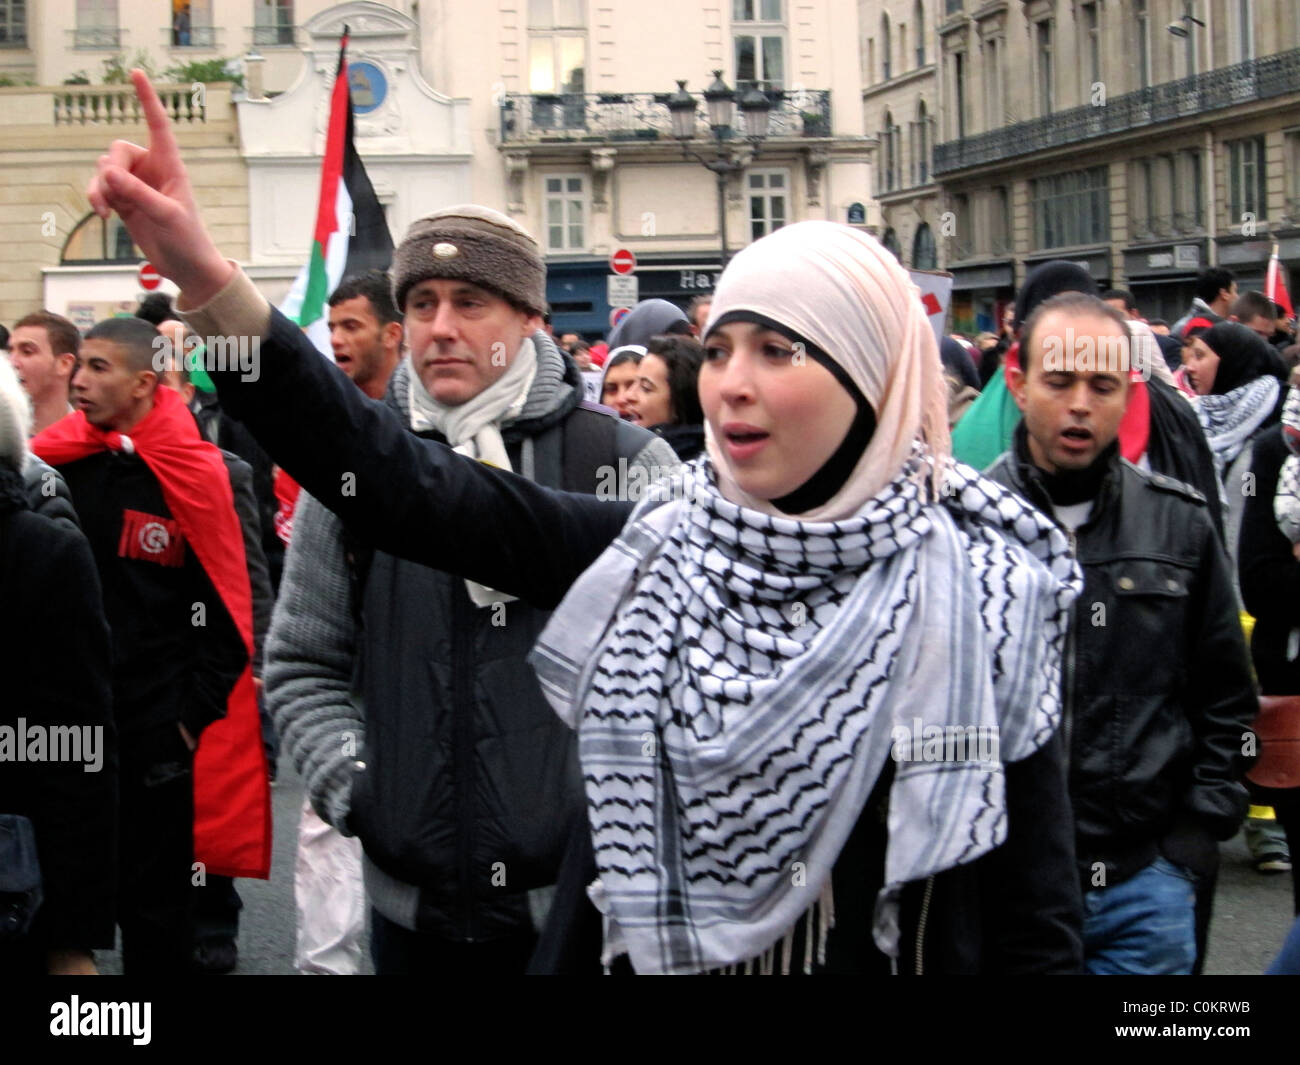 Paris france libya demonstration in support of libyan france libya demonstration in support of libyan revolution veiled women in head scarf marching and chanting slogans in street arab spring protests sciox Choice Image